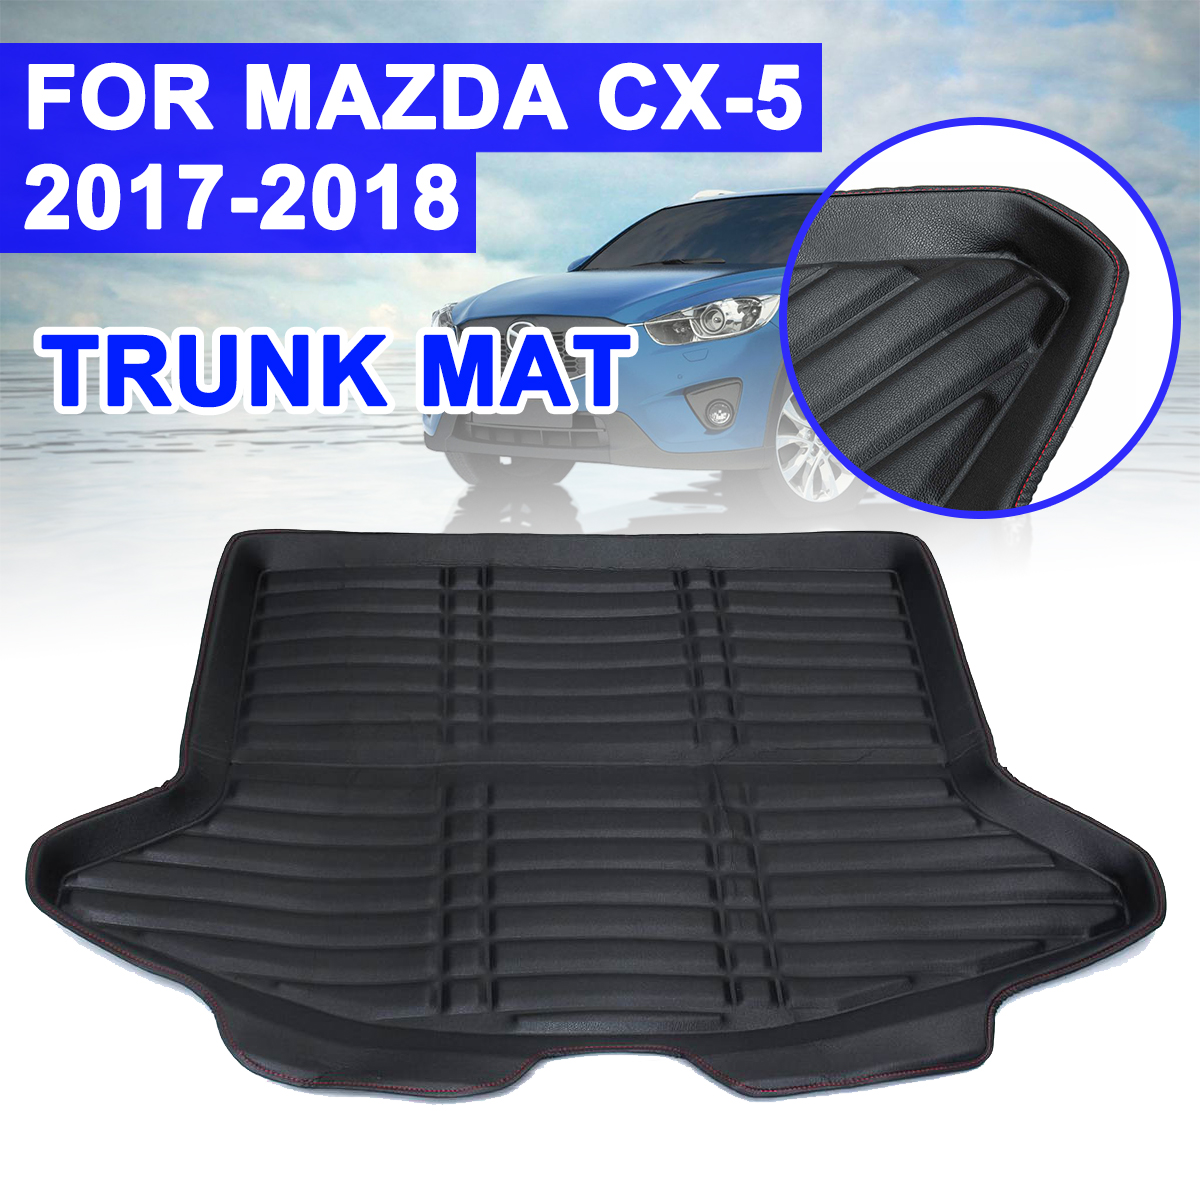 For Mazda CX 5 CX5 2017 2018 Cargo Liner Boot Mat Rear Trunk Liner Cargo Floor Tray Carpet Mud Pad Kick Guard Protector Replace